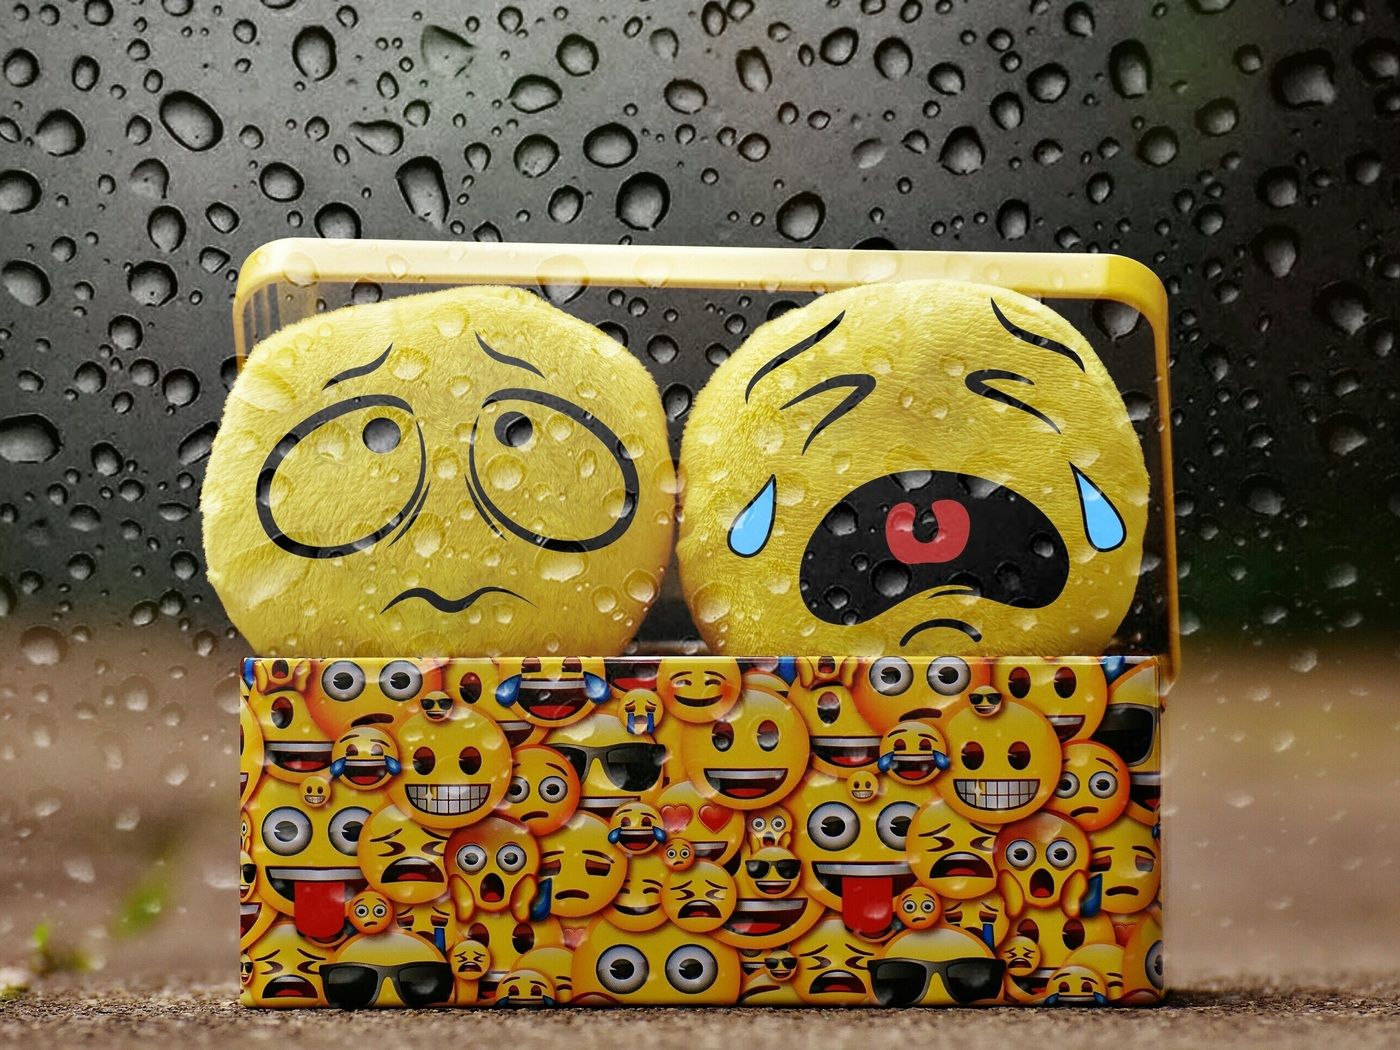 smile-cry-box-09.jpg